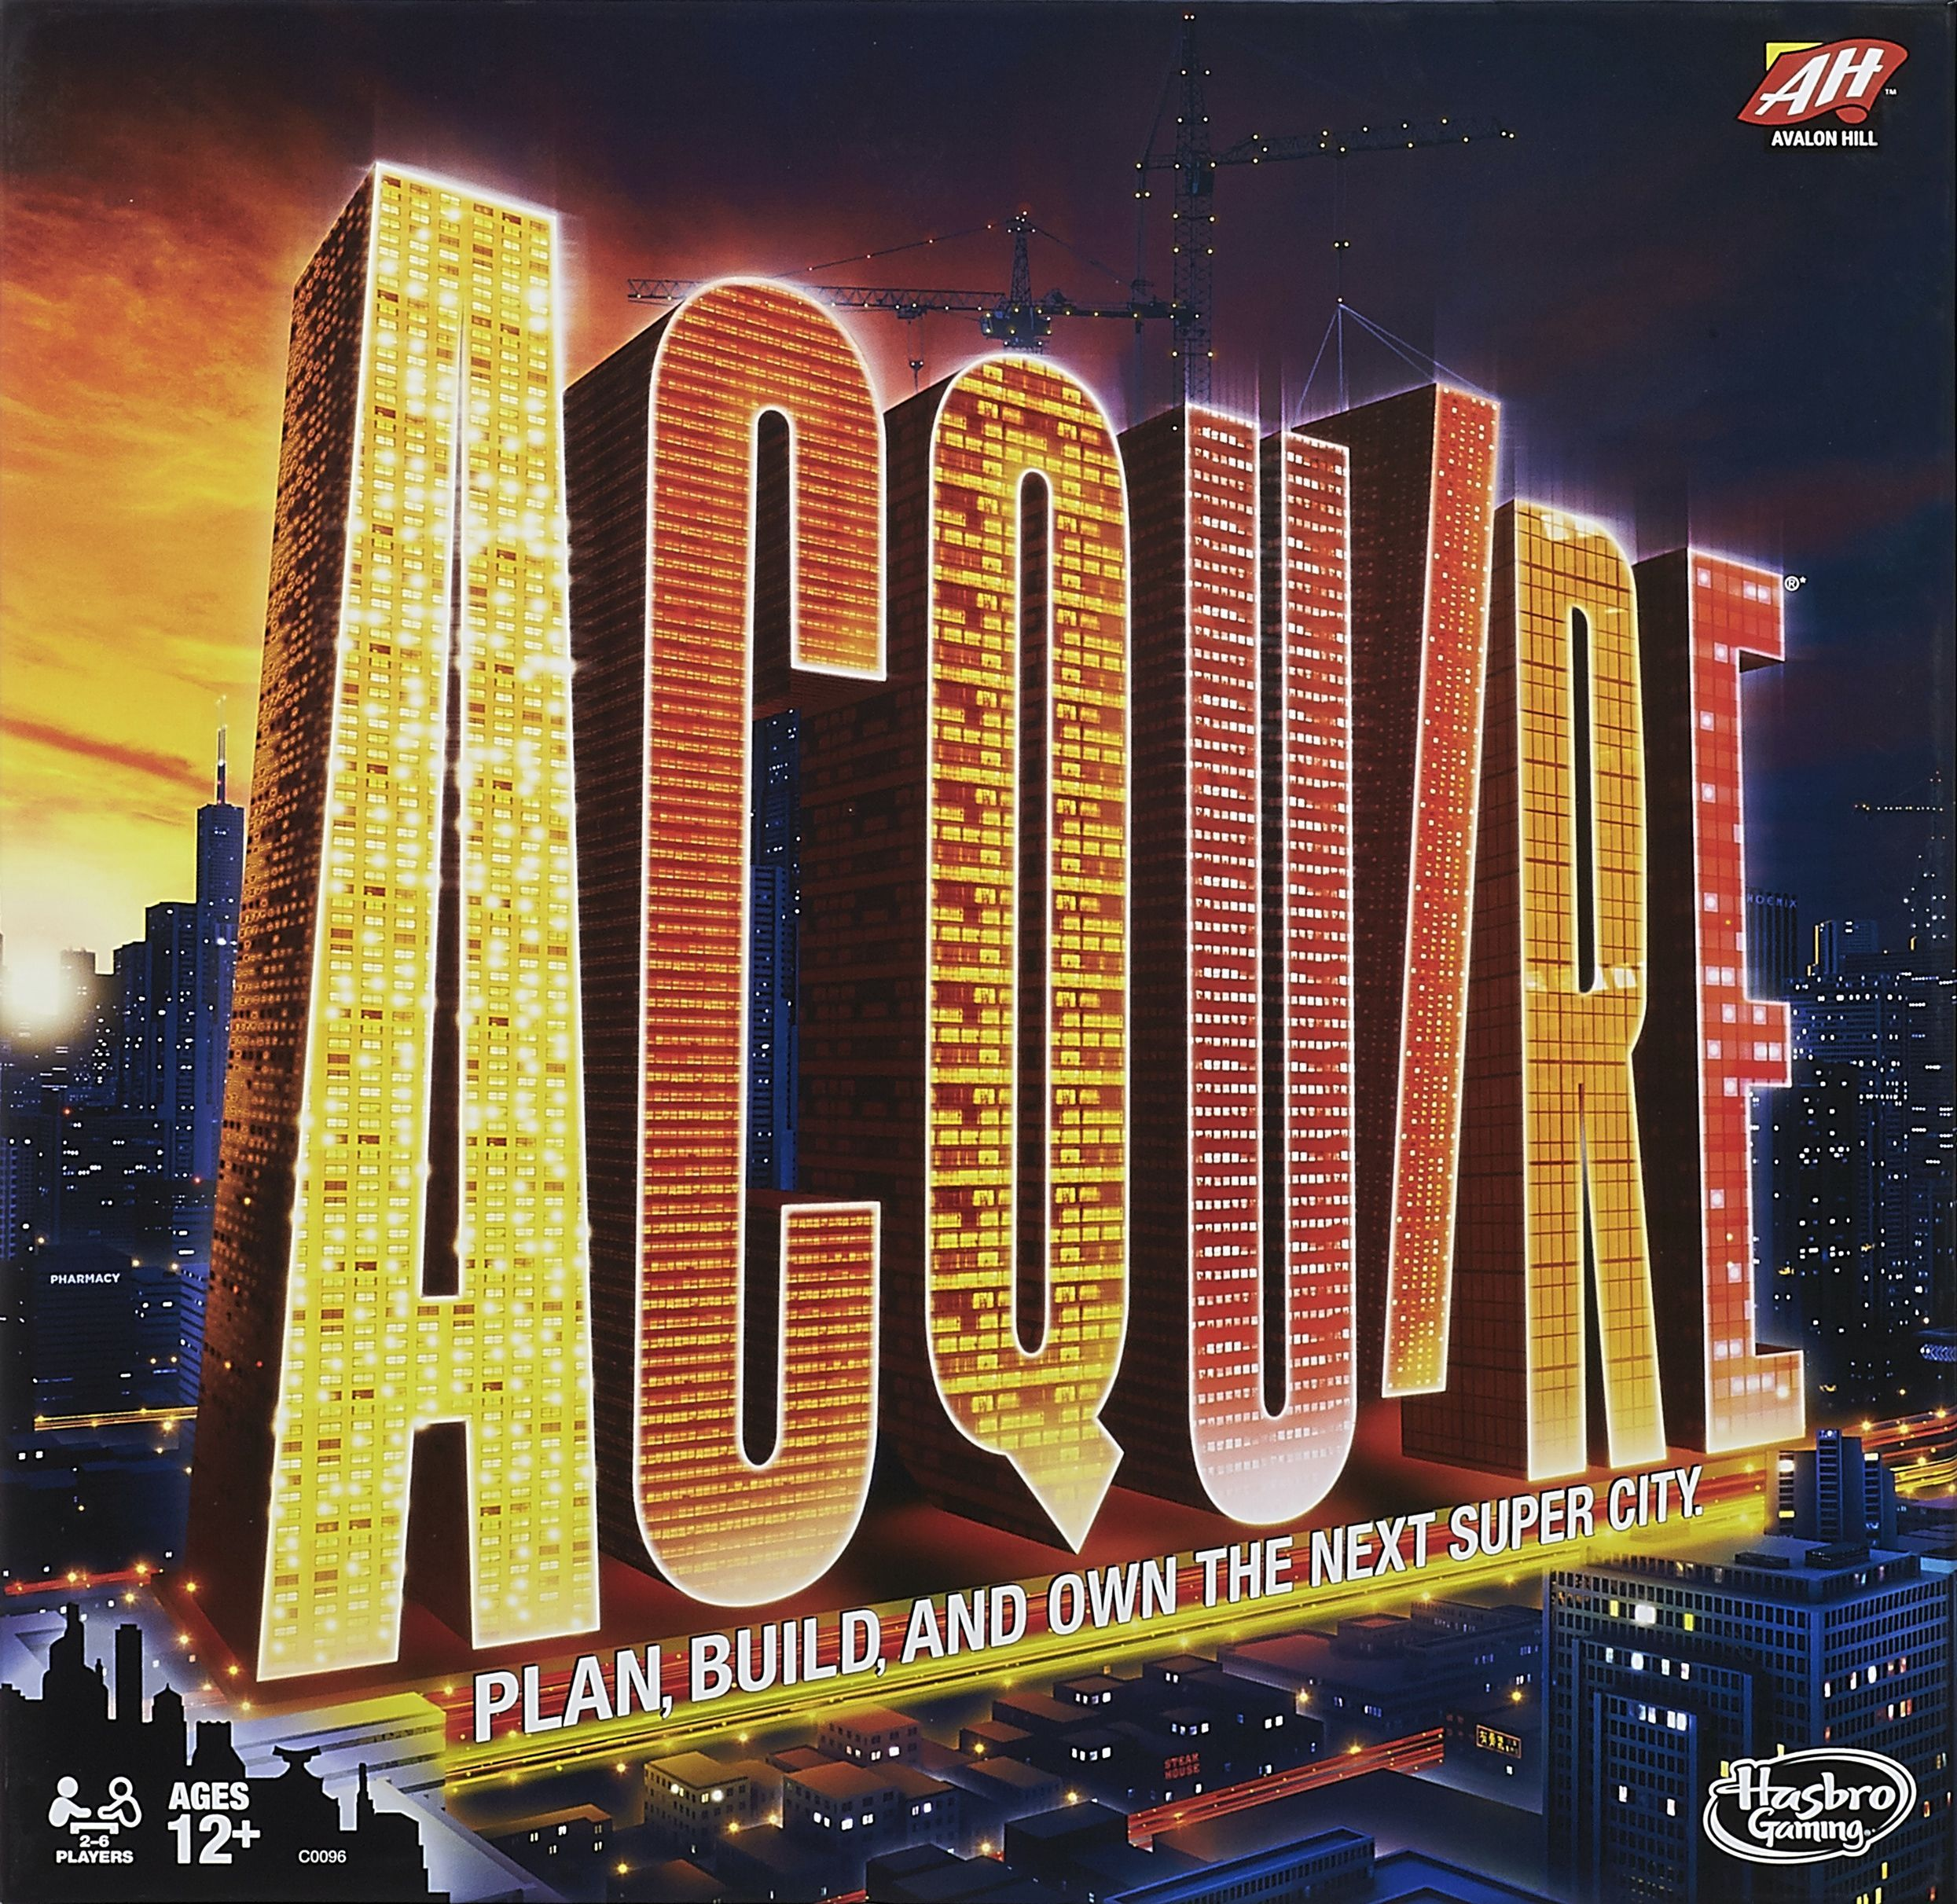 Main image for Acquire board game